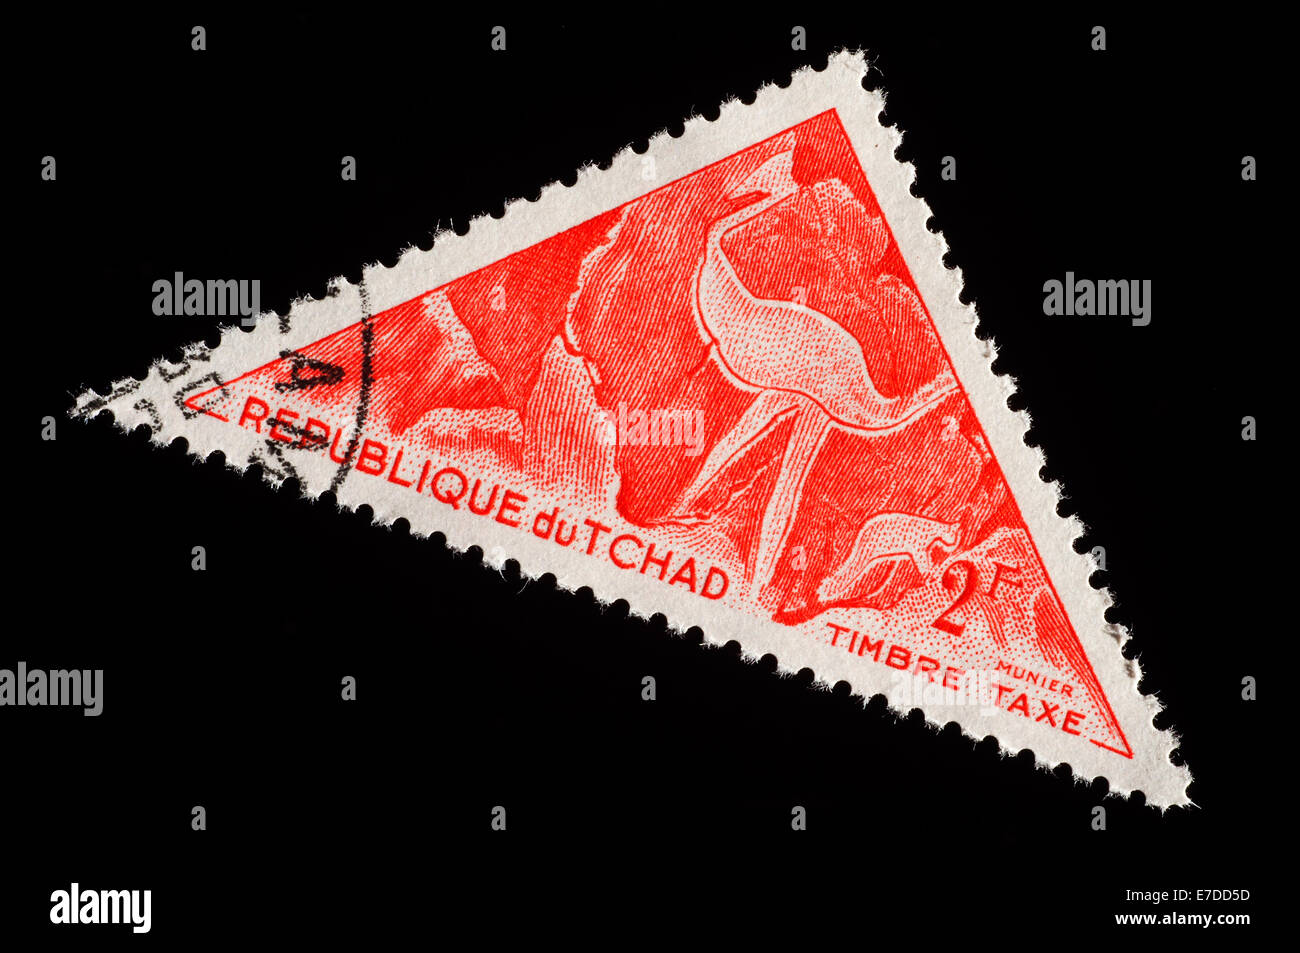 Triangular Postage stamp from Chad - Stock Image